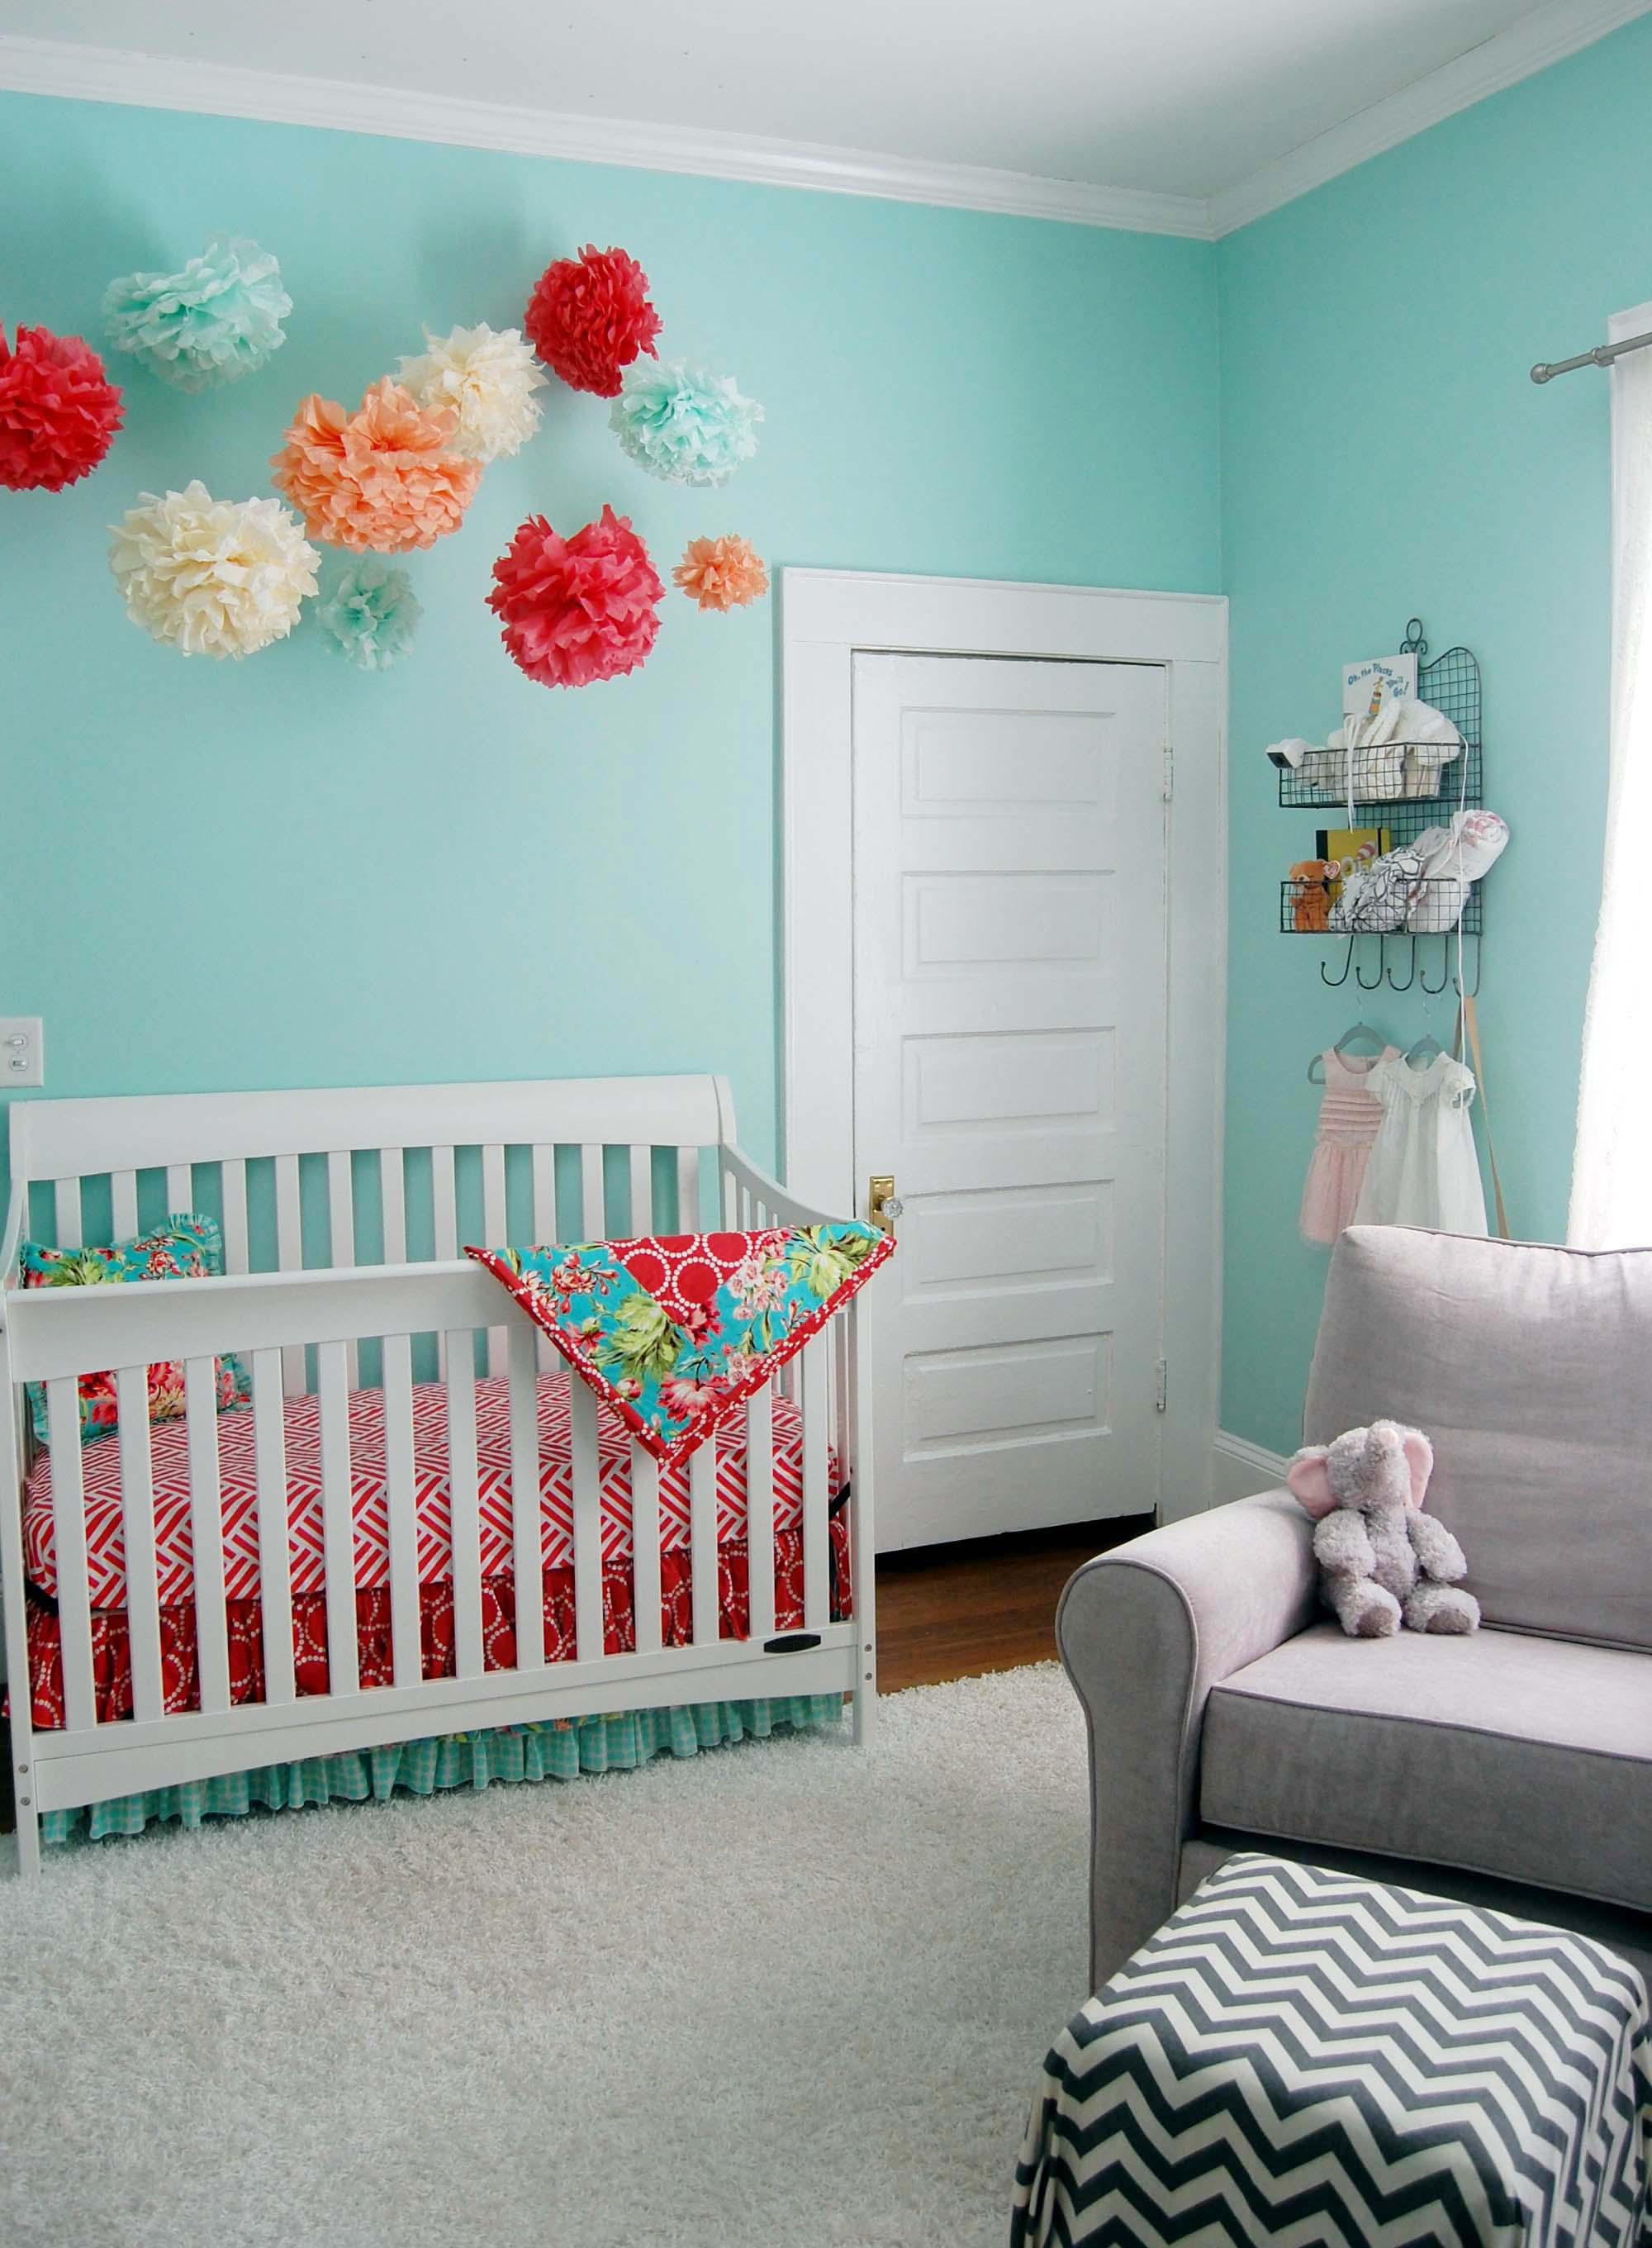 Coral and Aqua Crib Bedding from Studio Slumber